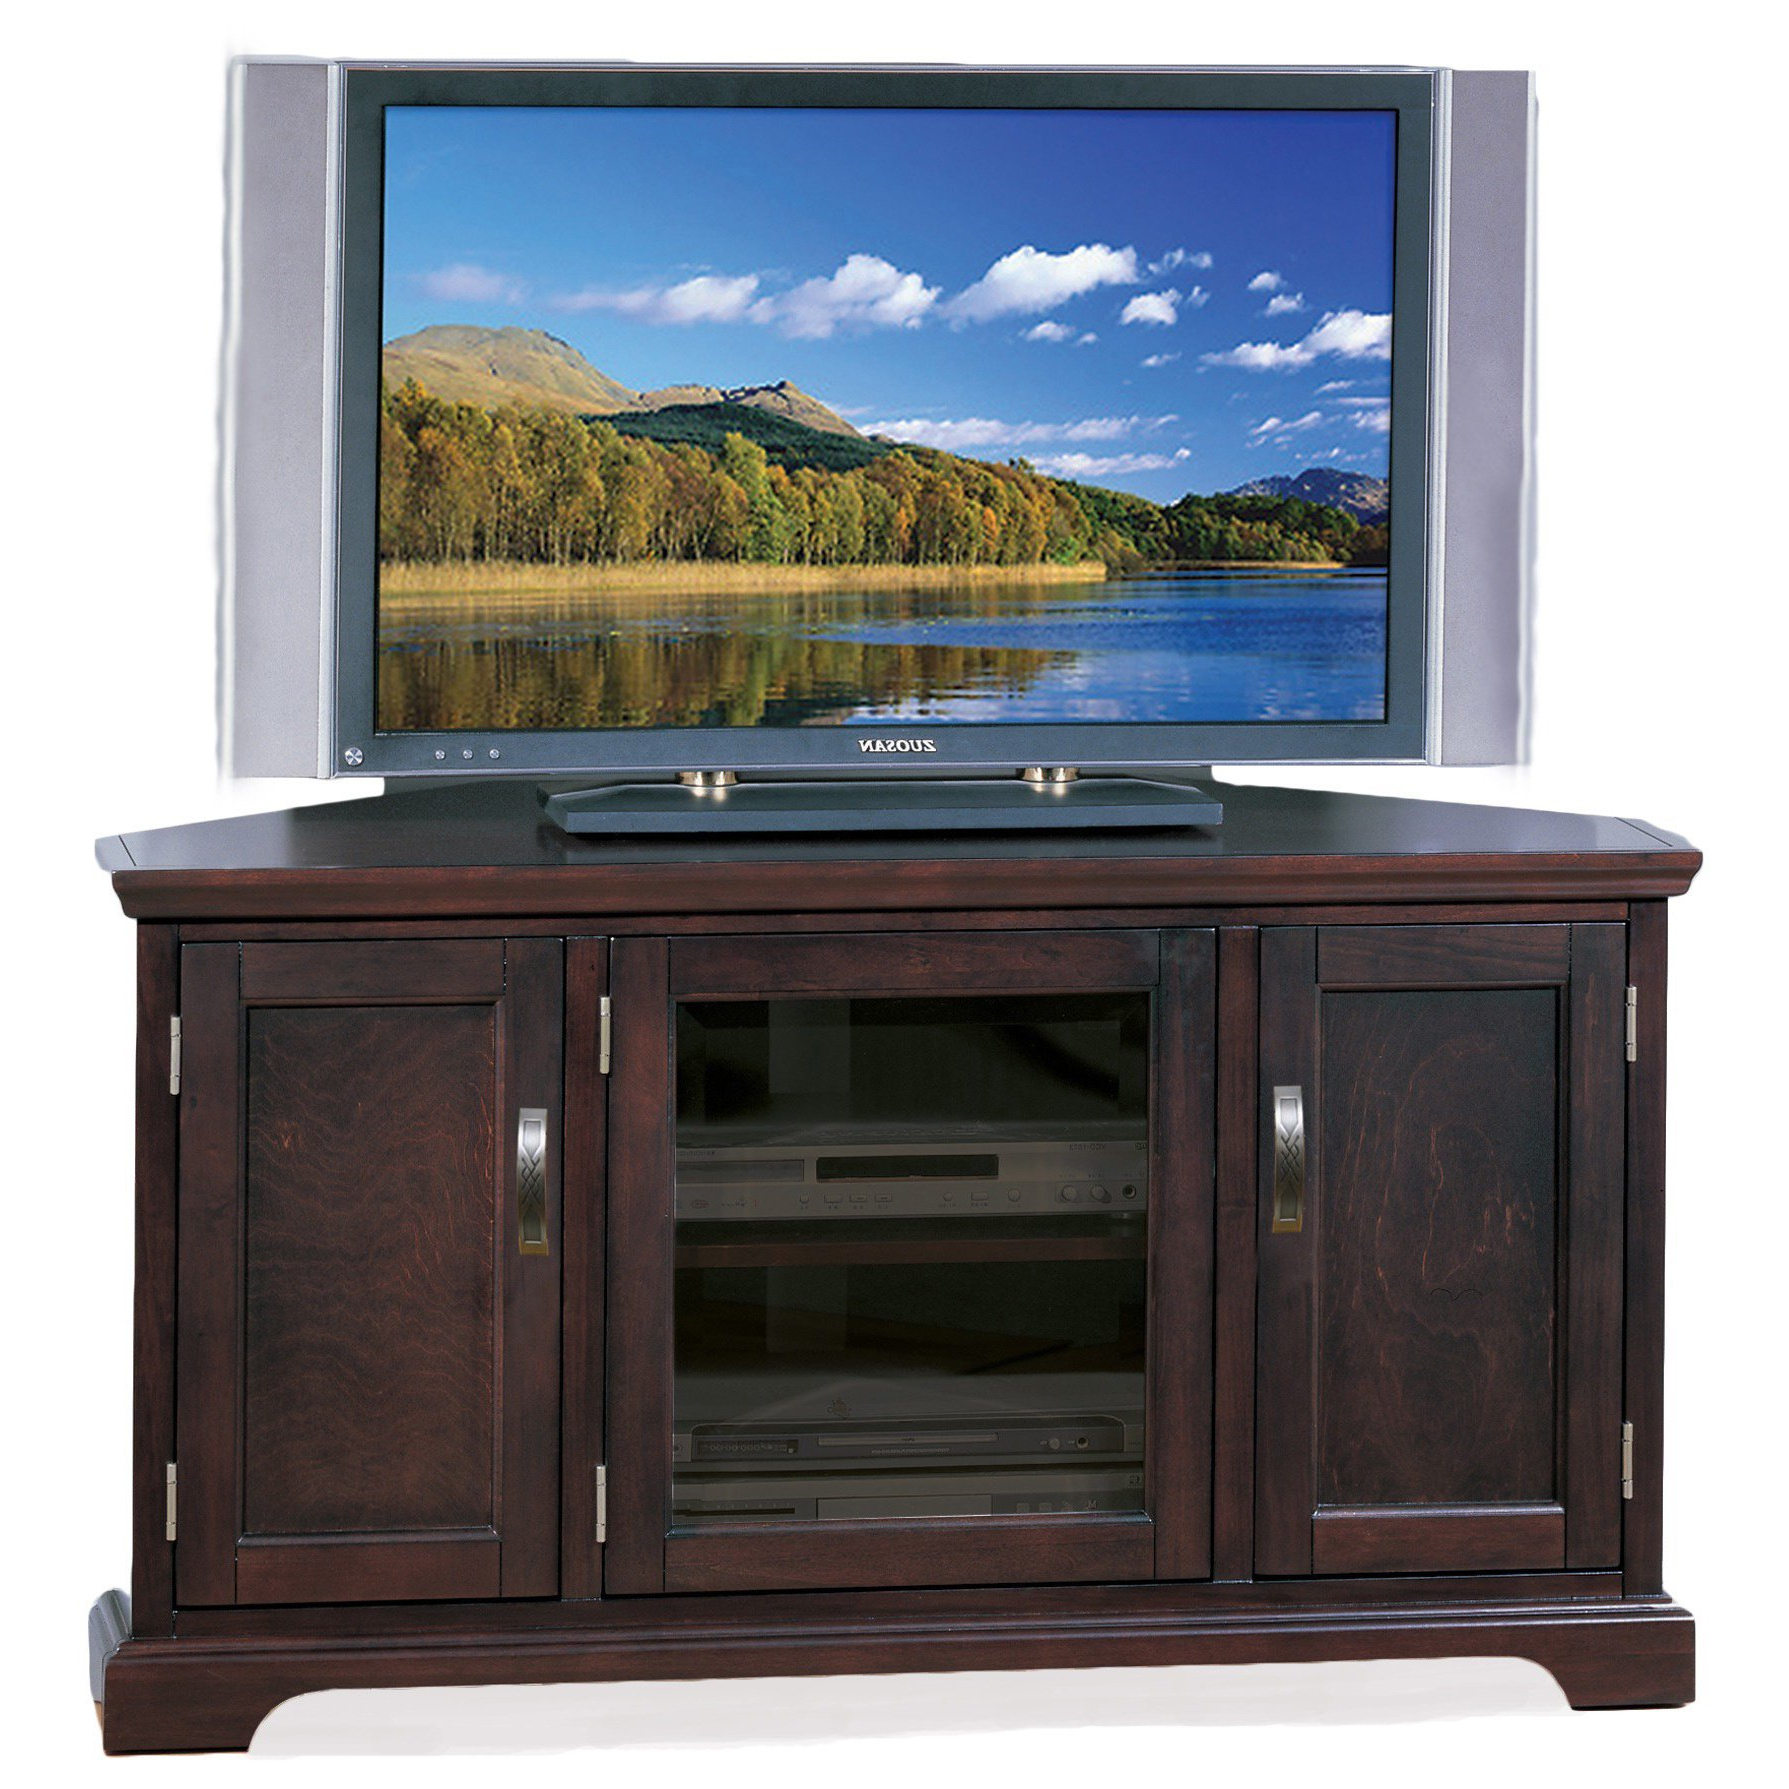 Shop Kd Furnishings Chocolate Bronze 46 Inch Corner Tv Stand & Media Intended For Well Liked Corner Tv Stands For 46 Inch Flat Screen (Gallery 12 of 20)